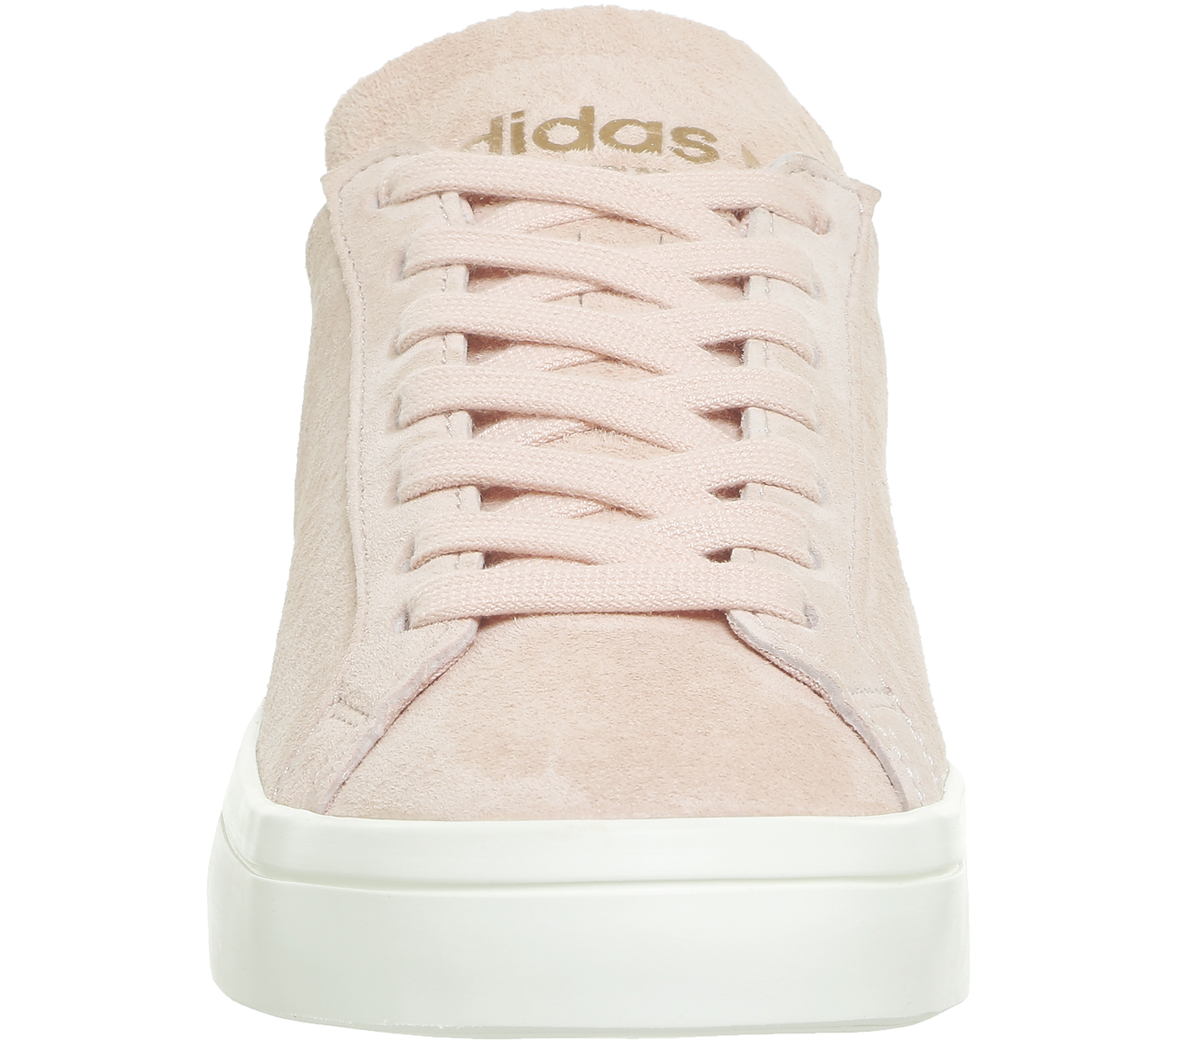 detailed look c7dfc 12924 Sentinel Womens Adidas Court Vantage Trainers VAPOUR PINK OFF WHITE Trainers  Shoes